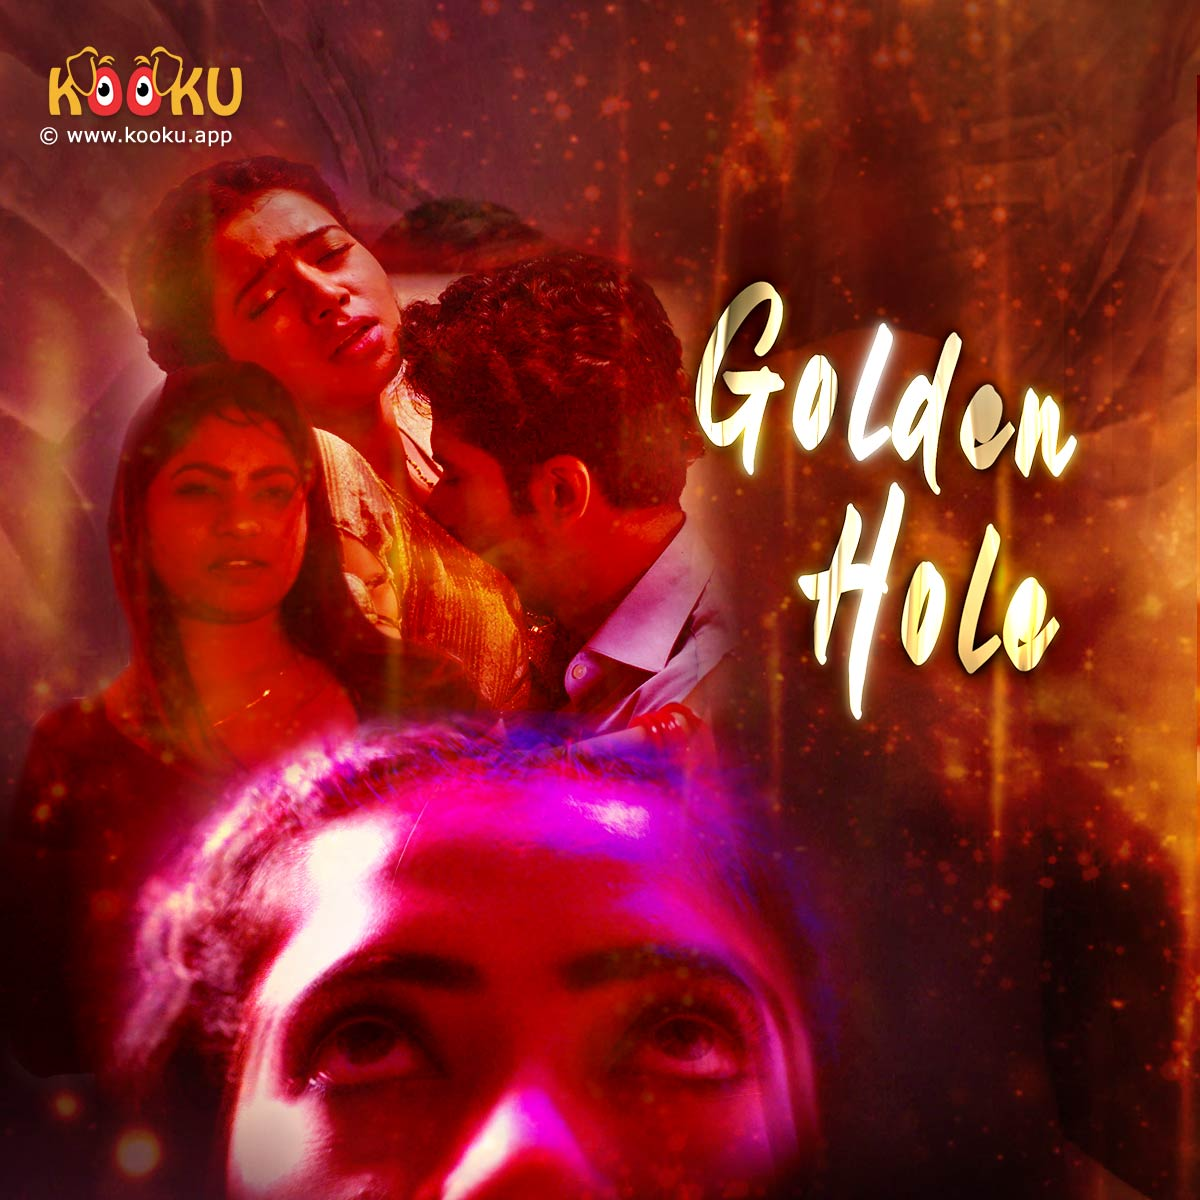 18+ Golden Hole 2020 S01 Hindi Kooku App Web Series Official Teaser 720p HDRip 10MB x264 AAC